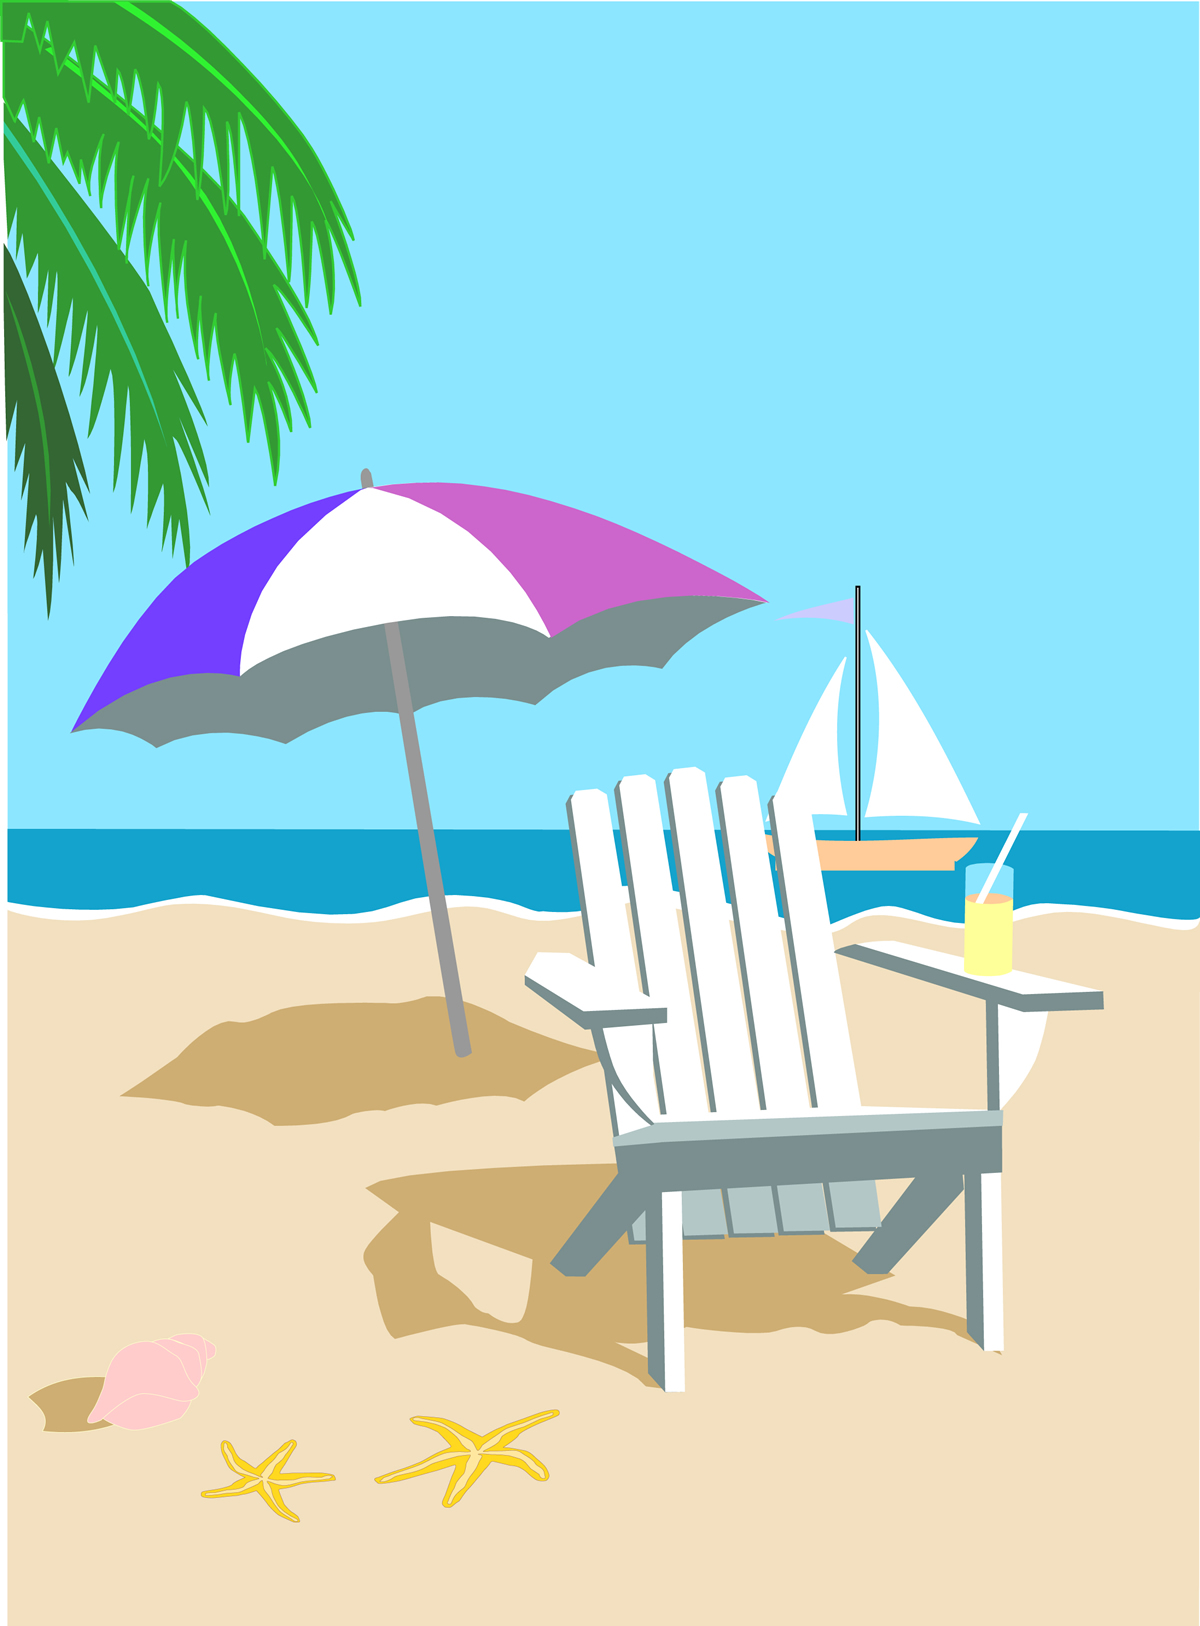 Beach hut animated clipart graphic transparent stock Free Beach Cliparts, Download Free Clip Art, Free Clip Art on ... graphic transparent stock